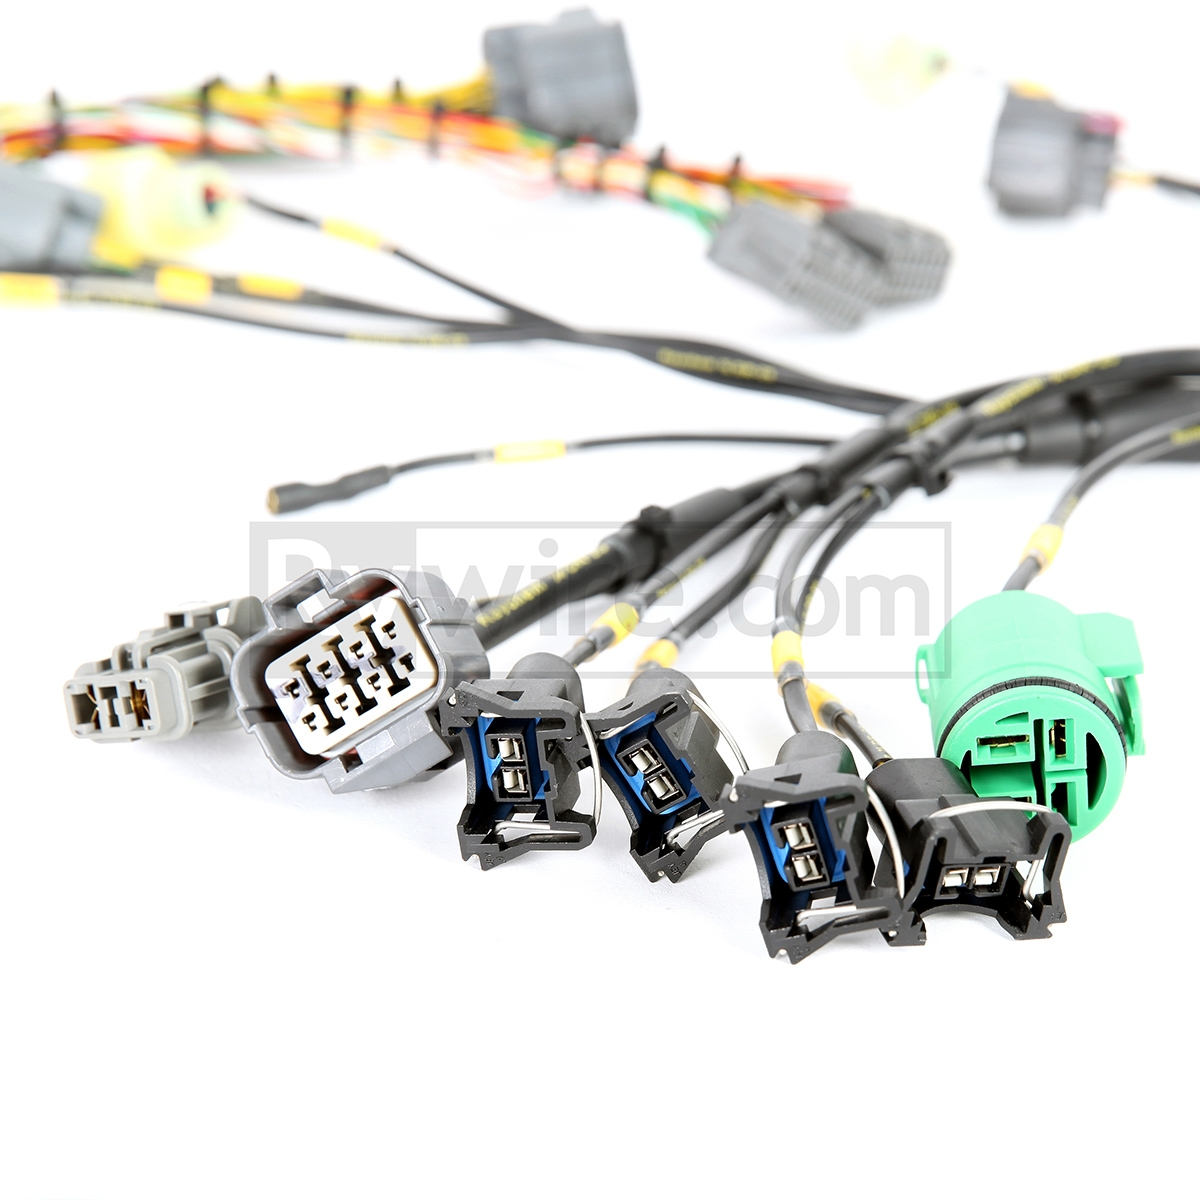 obd1 mil spec d & b series tucked engine harness Mil Spec Wire Harness Mil Spec Wire Harness #25 mil spec wiring harness